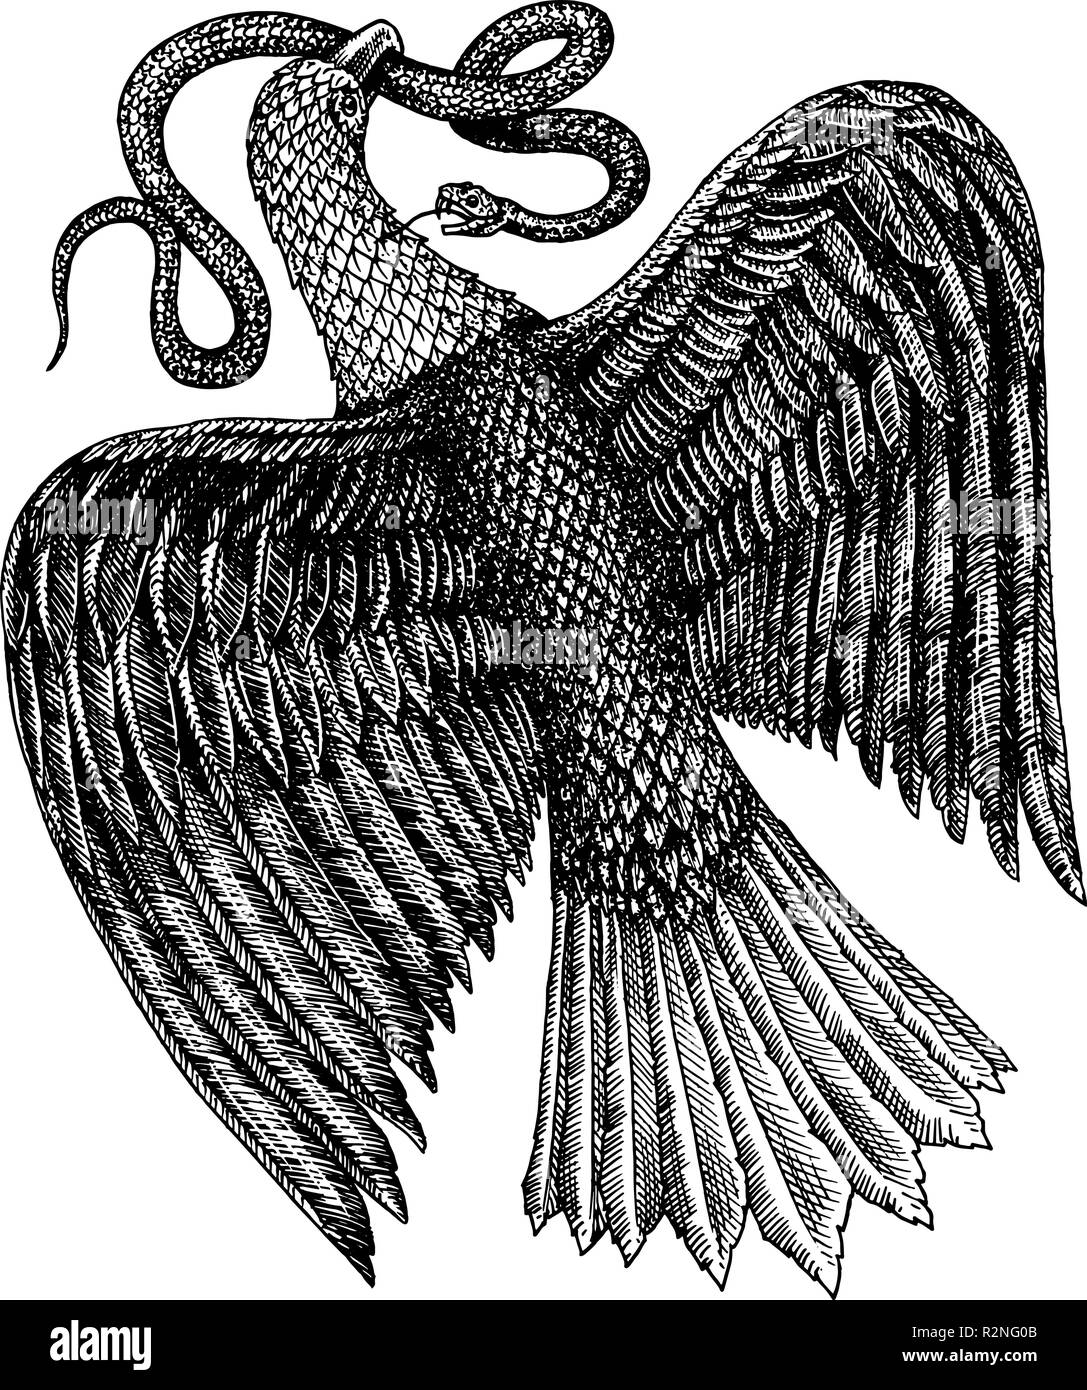 aquila symbol of freedom an eagle eating a snake wild predatory